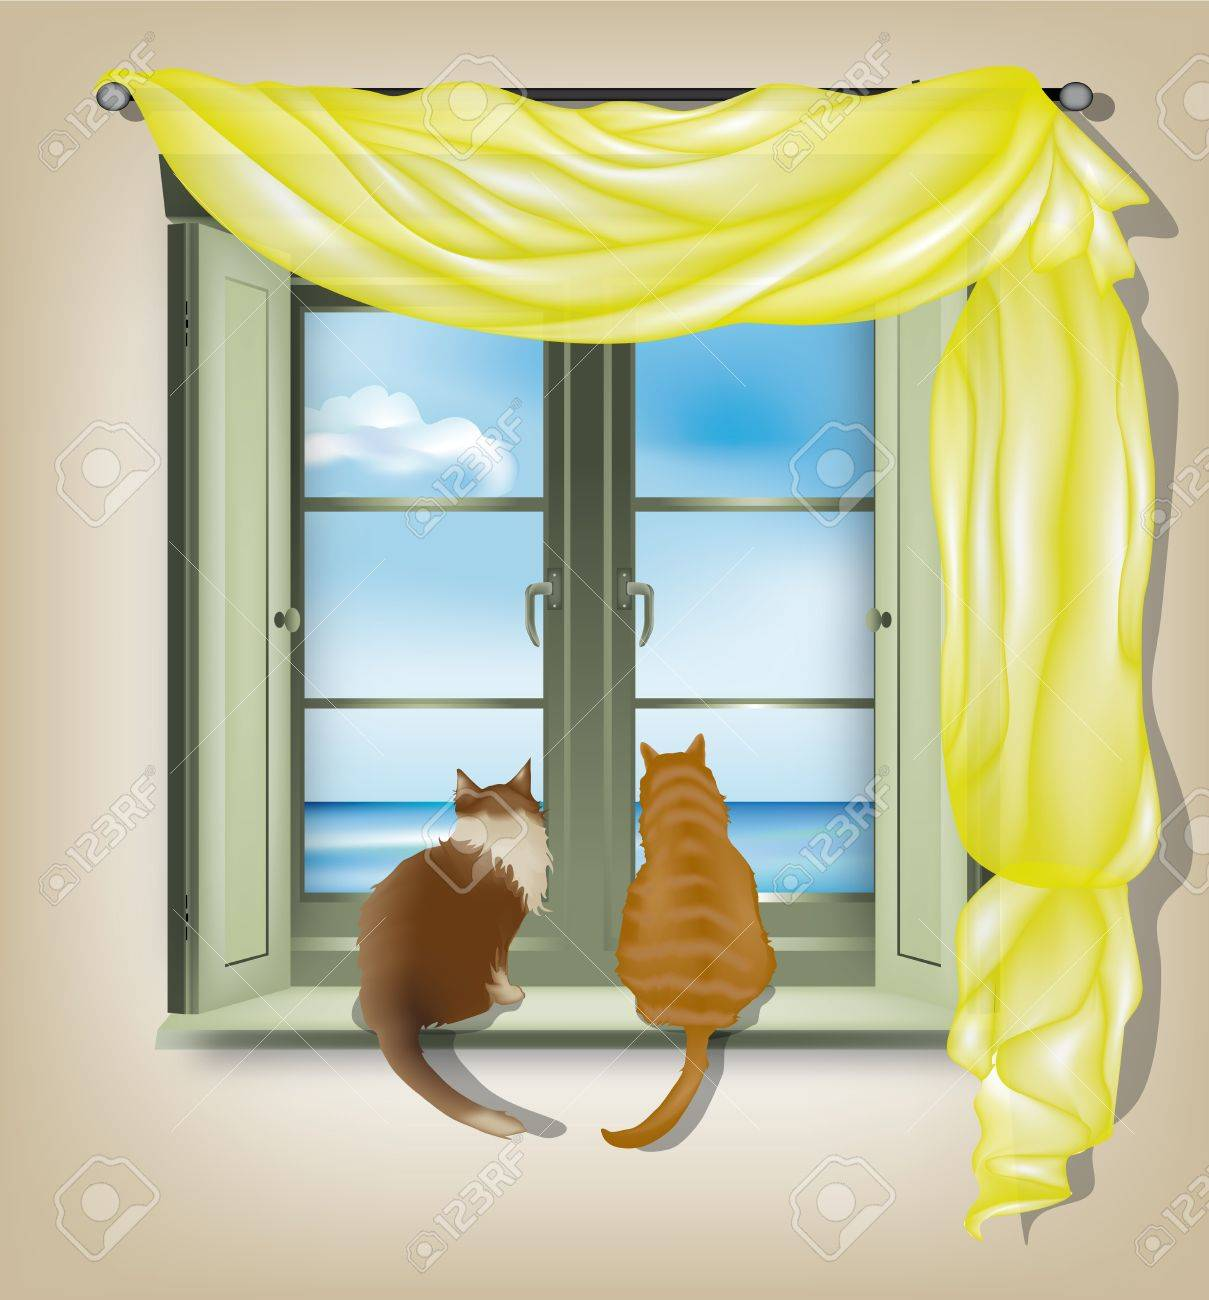 Two cats on inner window sill looking out of marine scene Stock Vector - 14163837